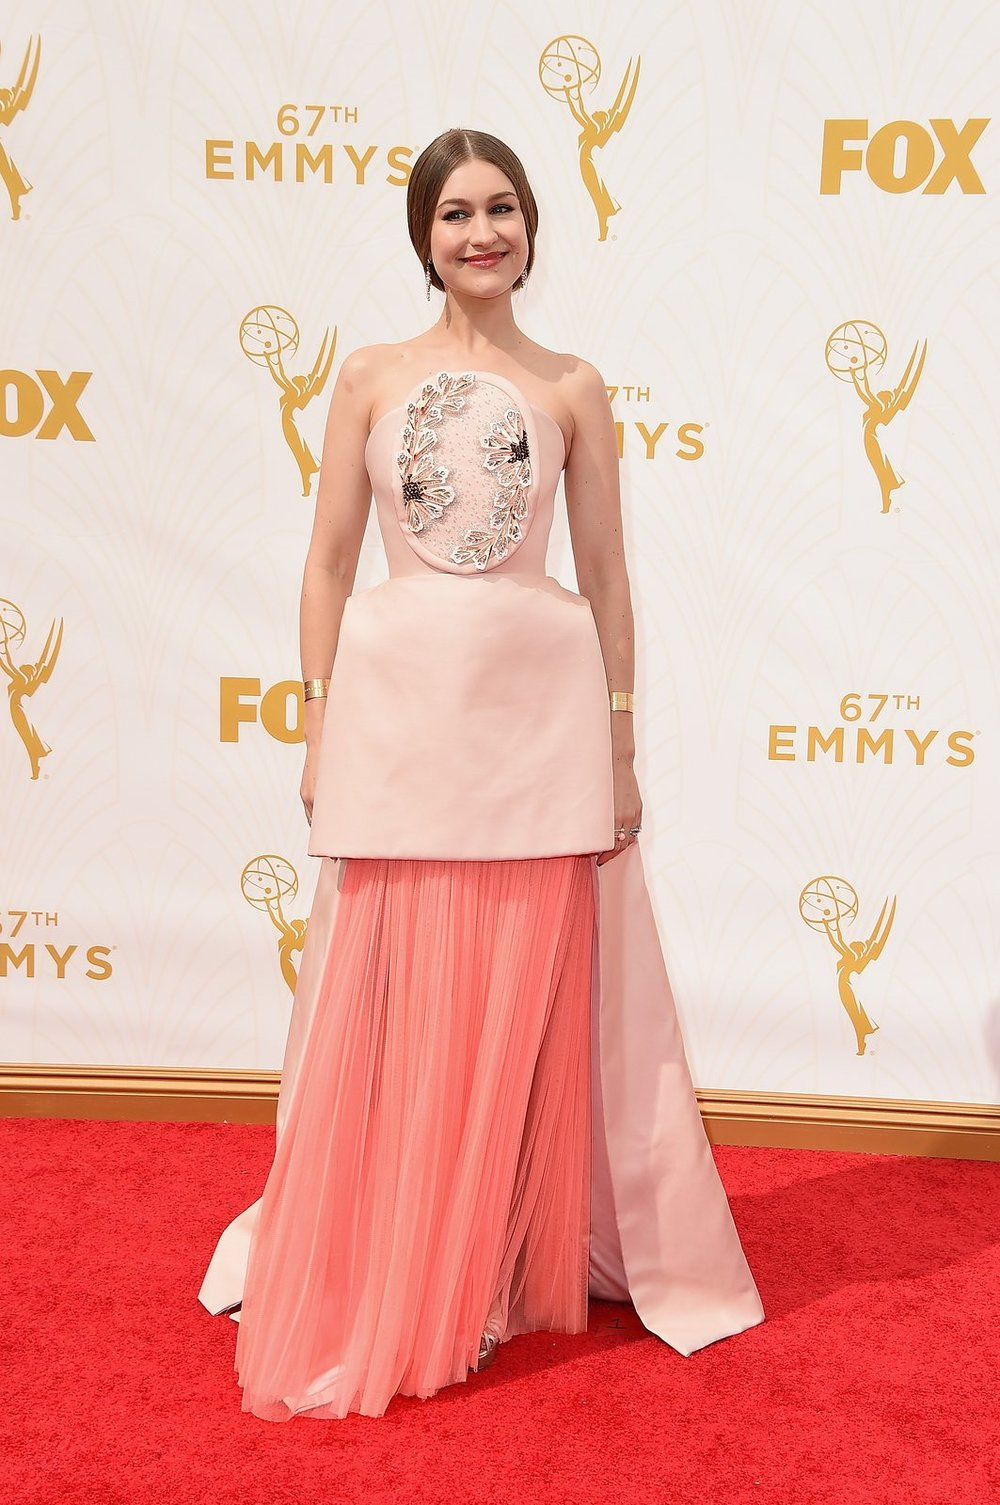 joanna-newsom-emmys-red-carpet-2015.jpg